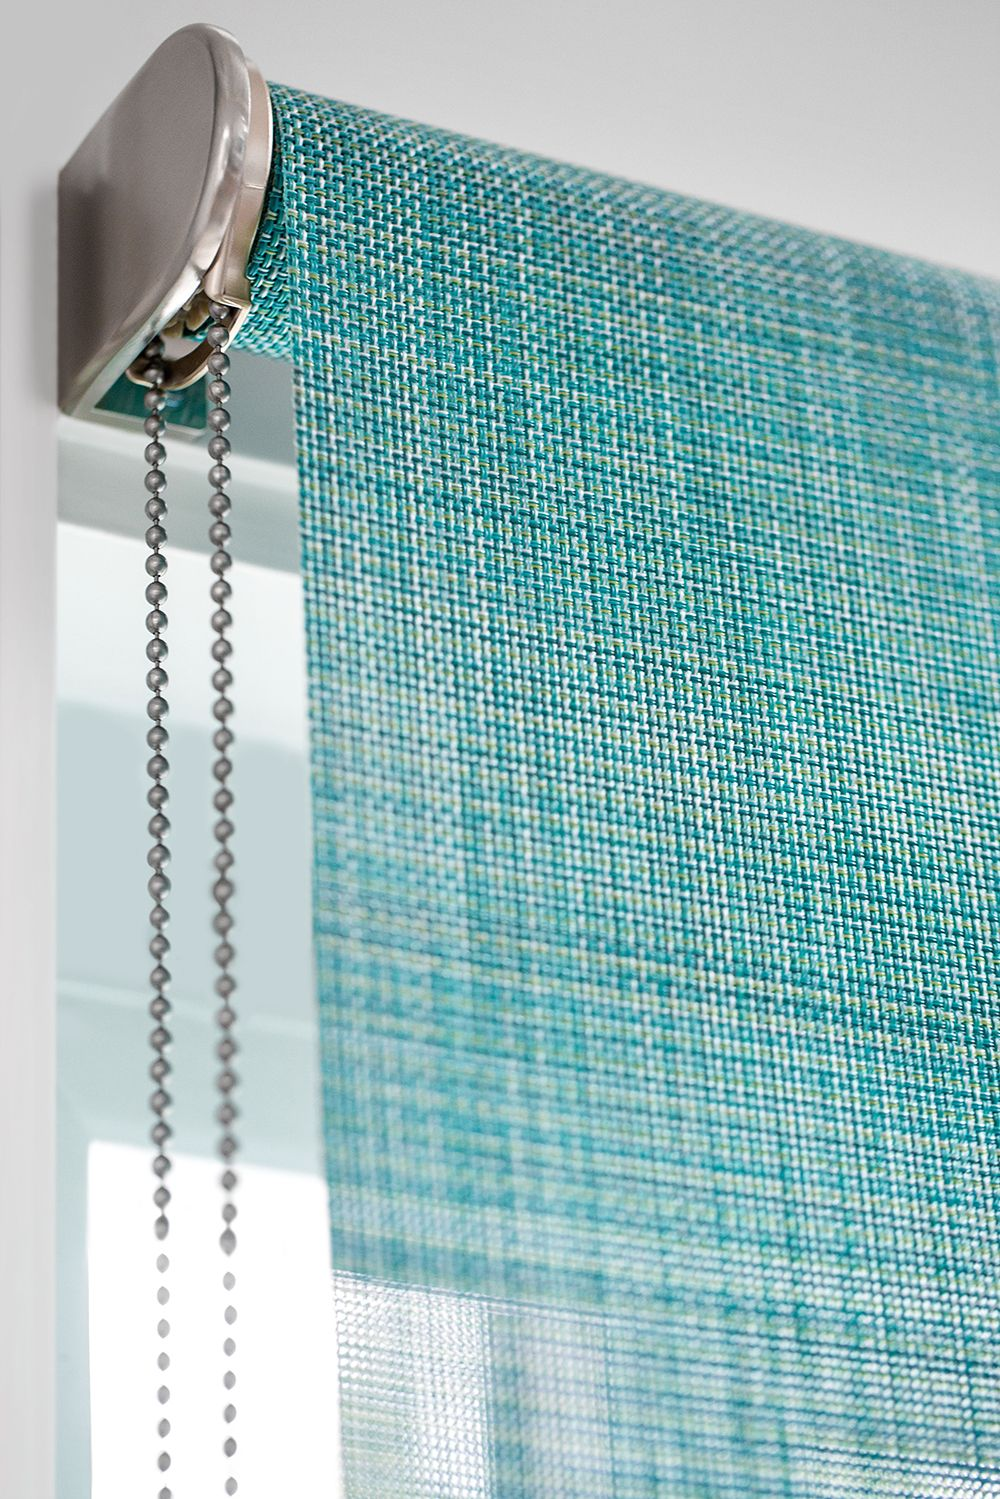 How To Hang Roller Shades Regular Or Reverse Roll